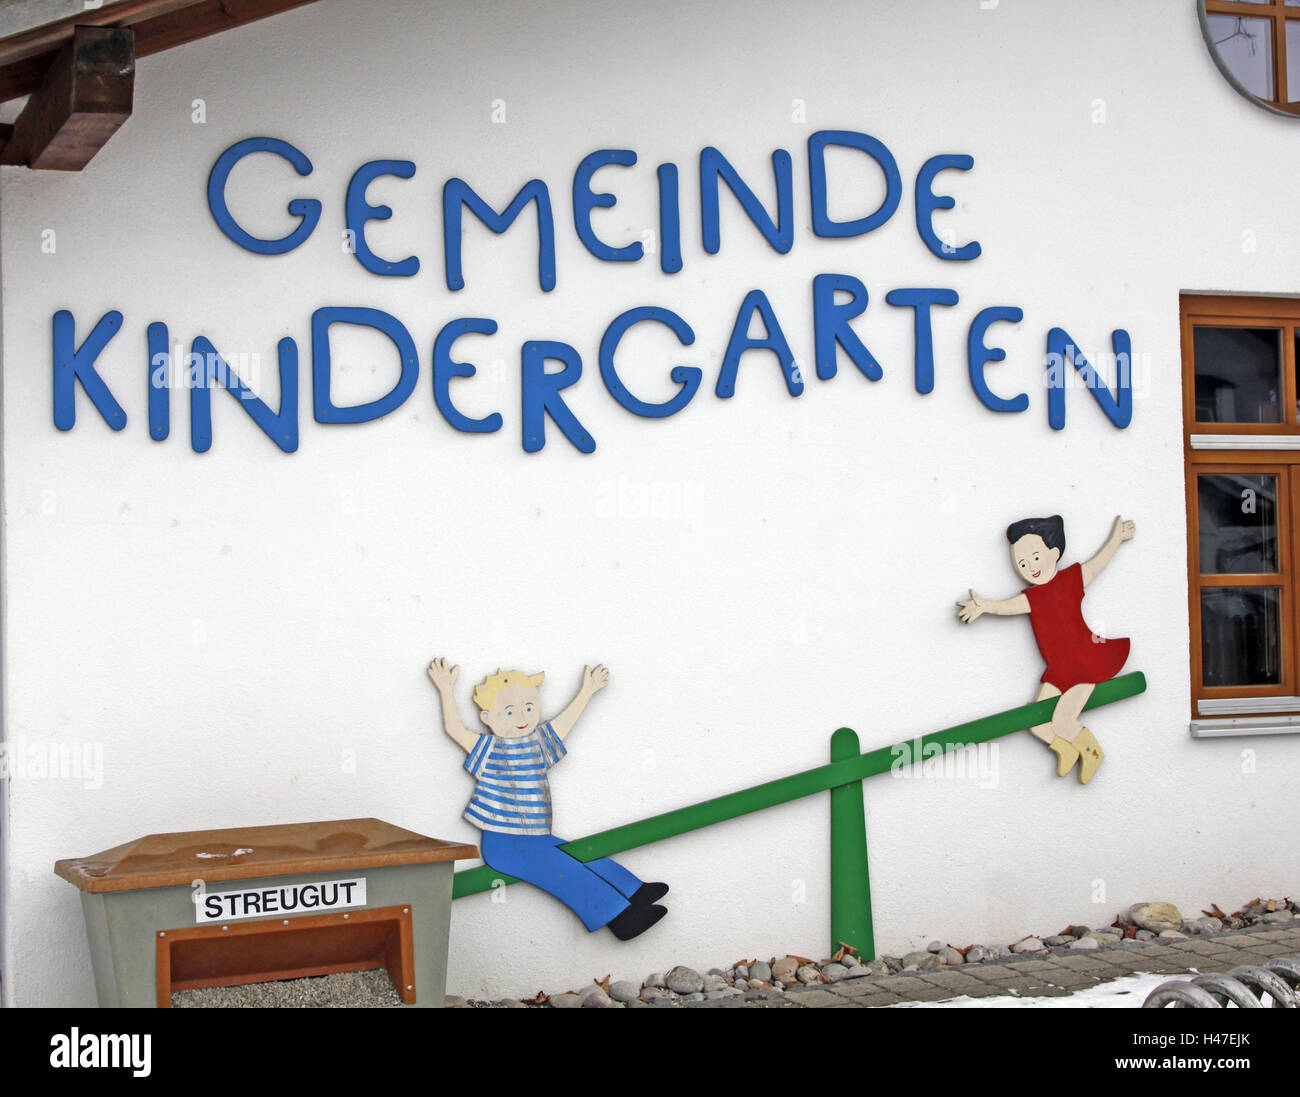 Kindergarten Wall Painting Stroke Germany Hoard Care Care